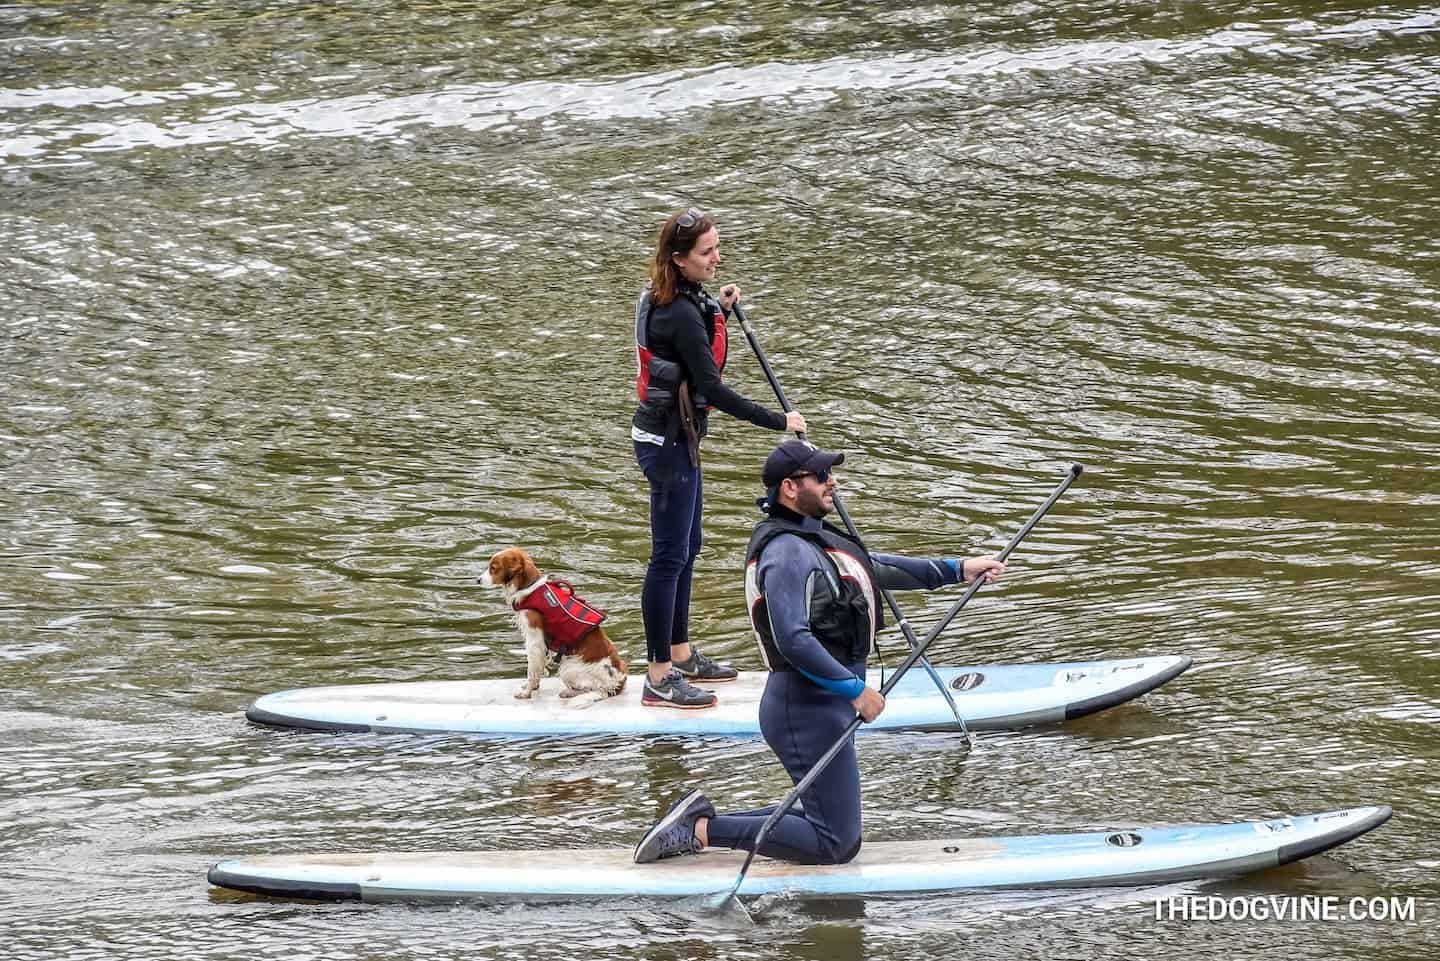 Your London Dog Events Agenda for 08-09 September - Dog and Human Paddle Boarding 1